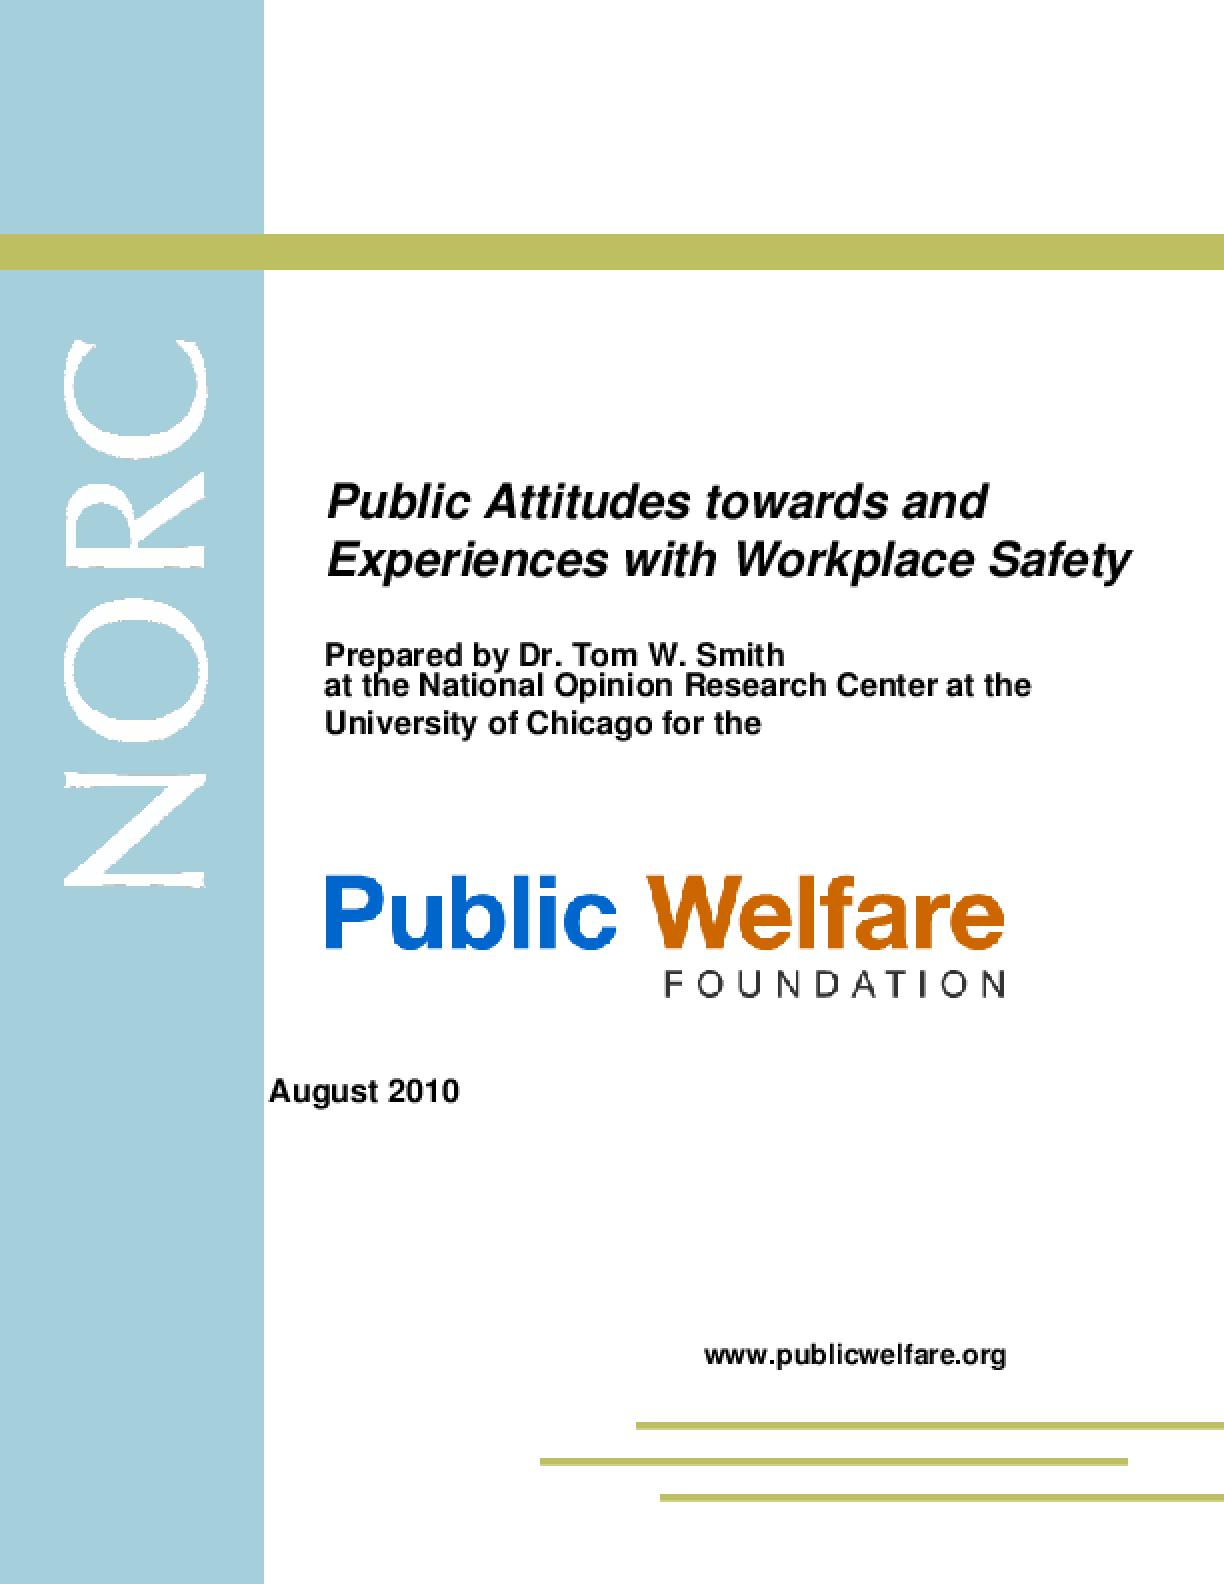 Public Attitudes Towards and Experiences With Workplace Safety